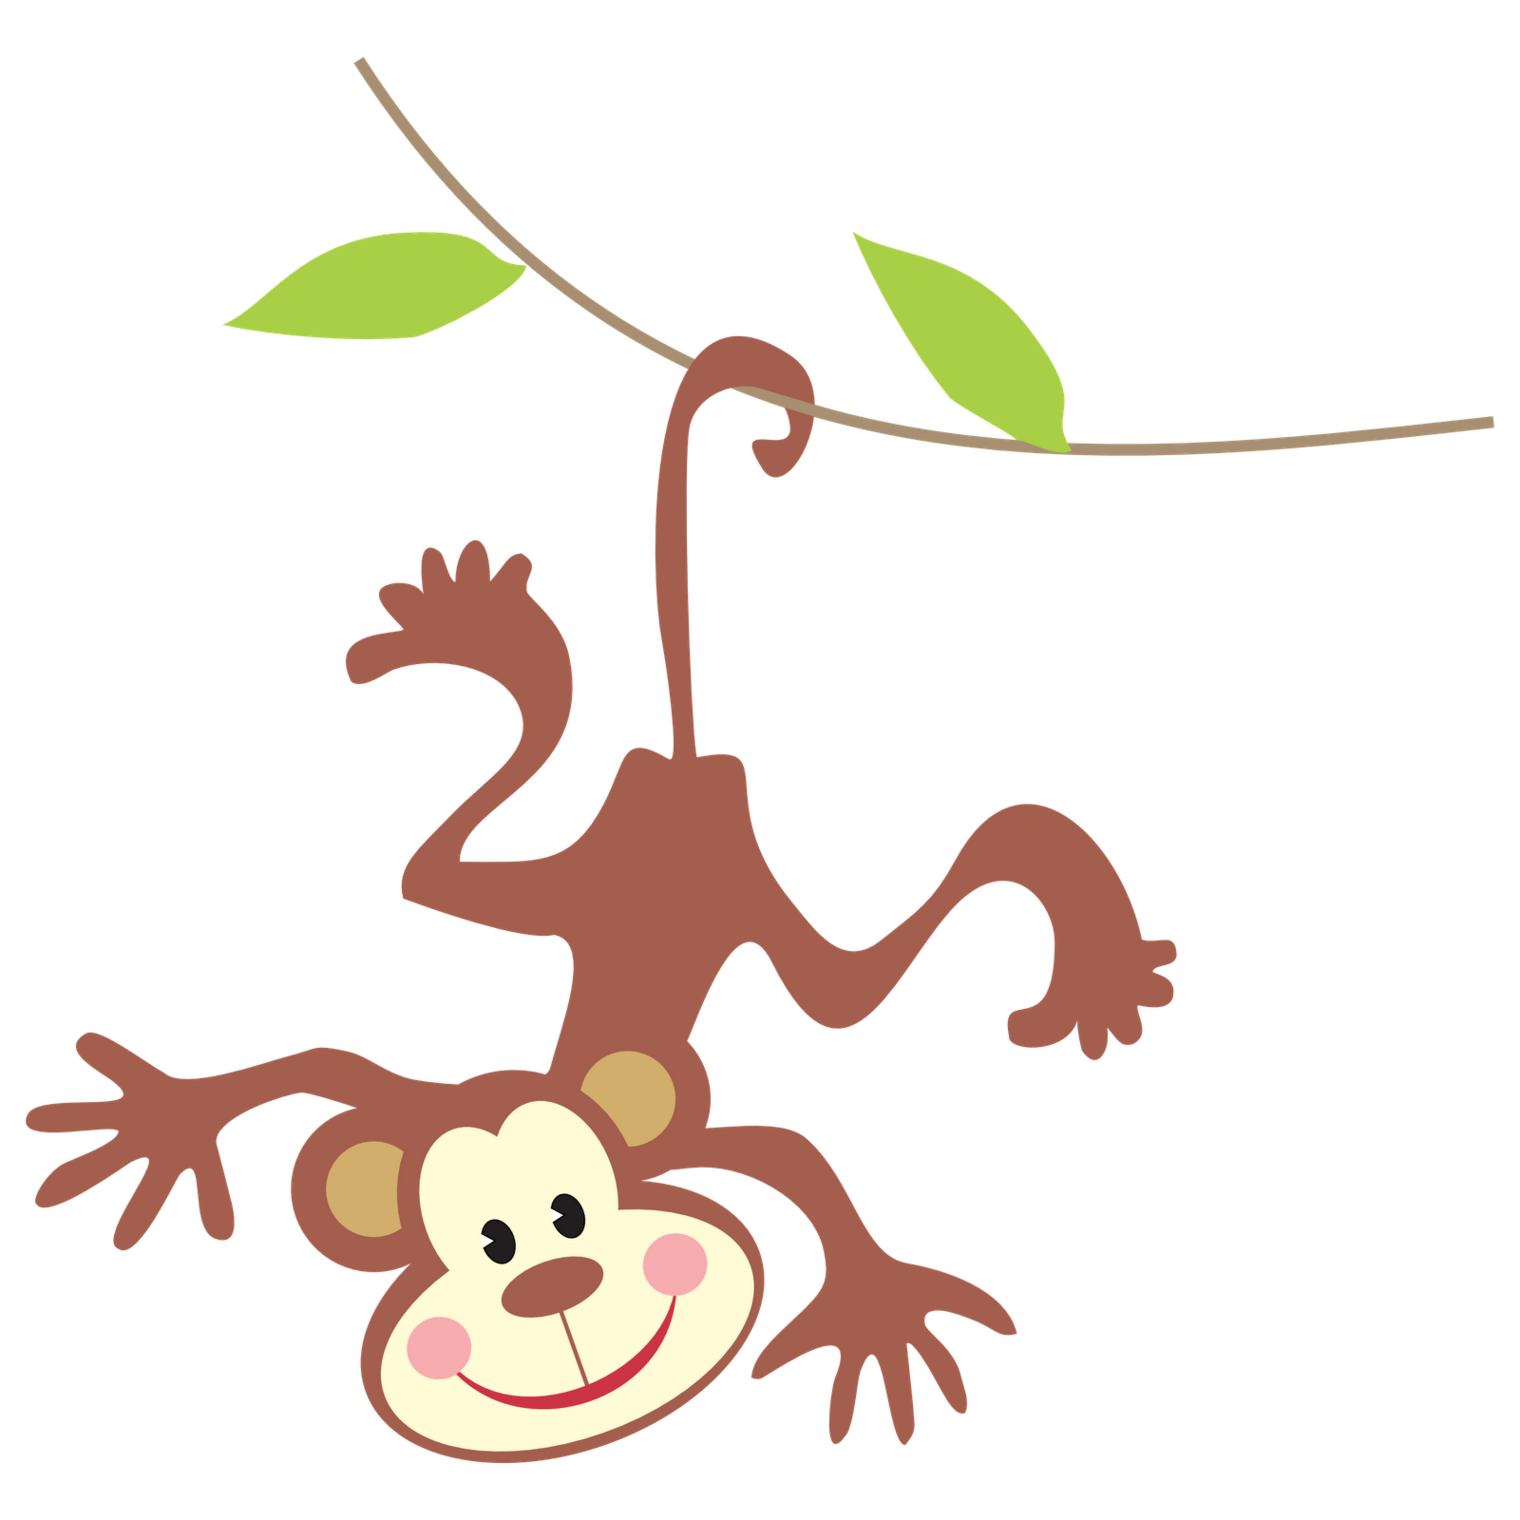 Monkey hanging from a tree clipart banner freeuse Hanging Monkey Clipart Image Group (67+) banner freeuse